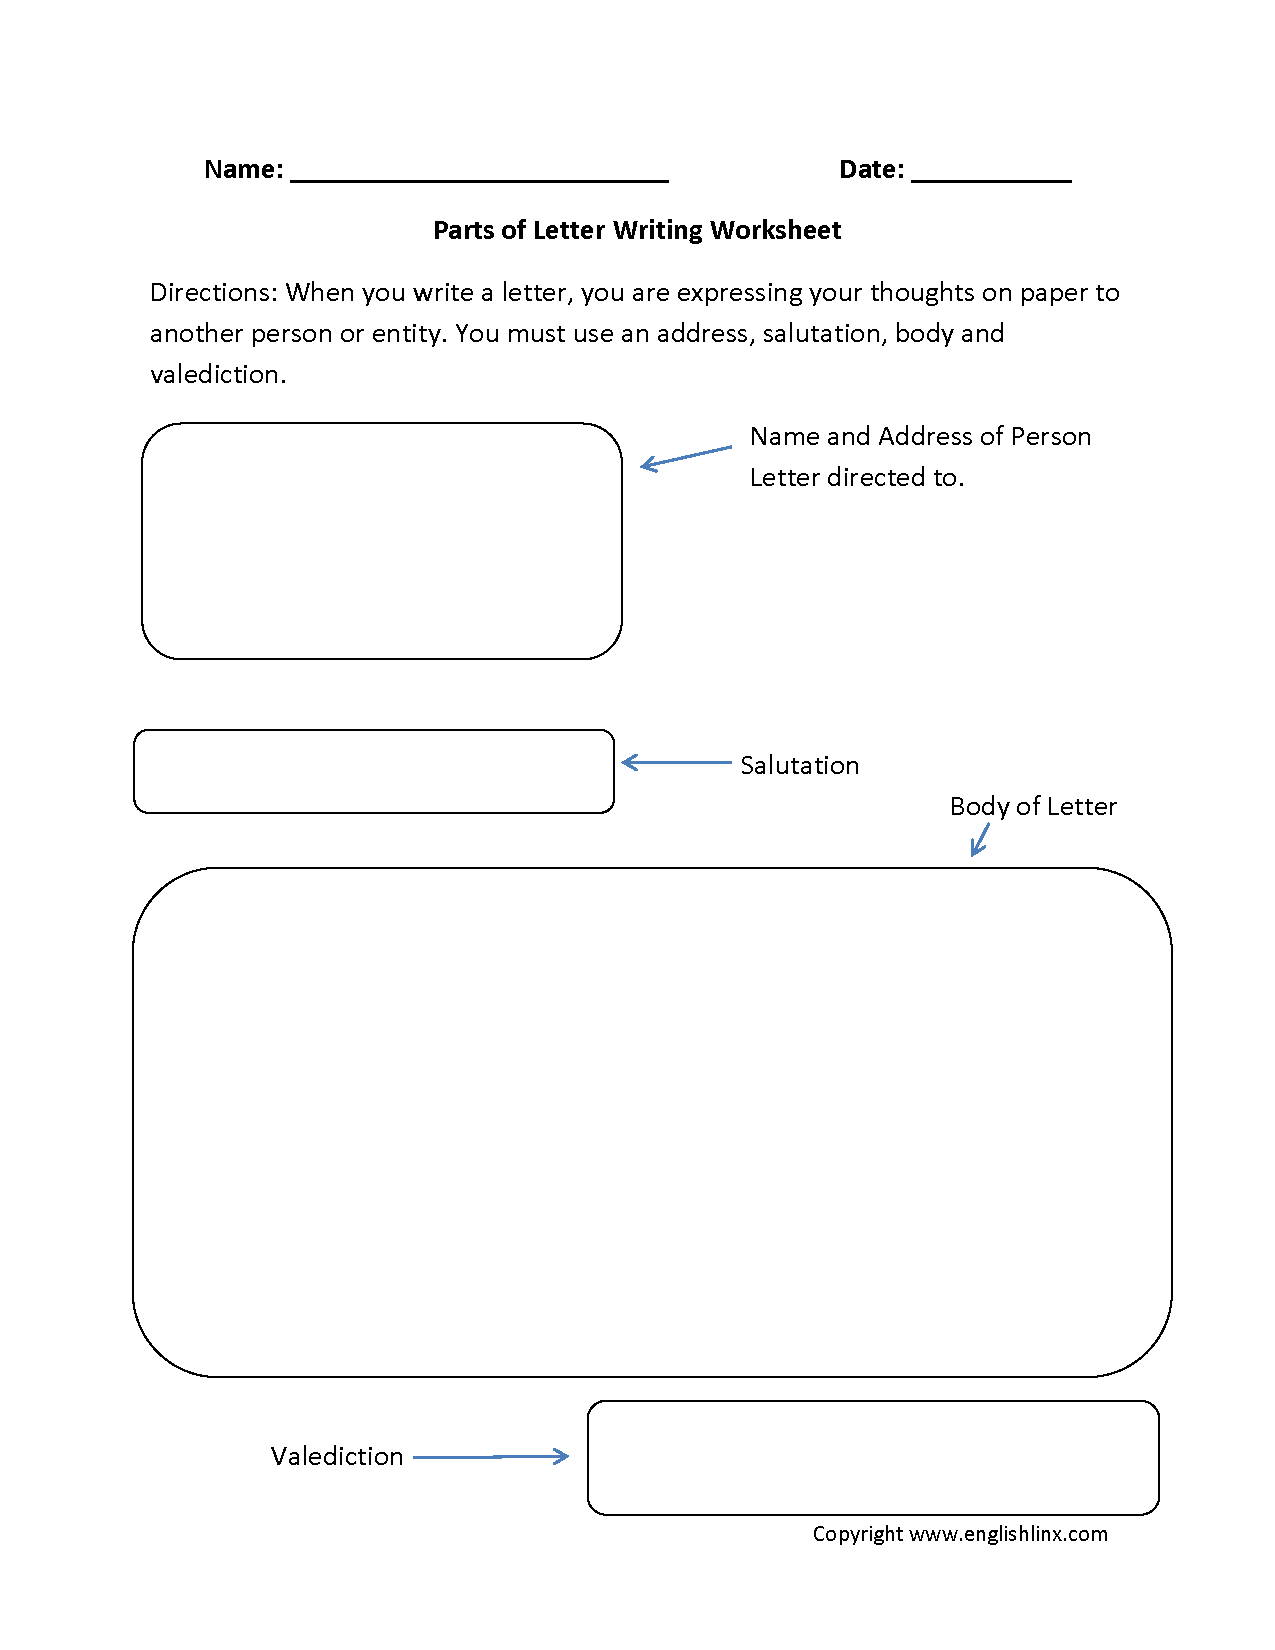 Letter Writing Worksheets | Parts of Letter Writing Worksheets